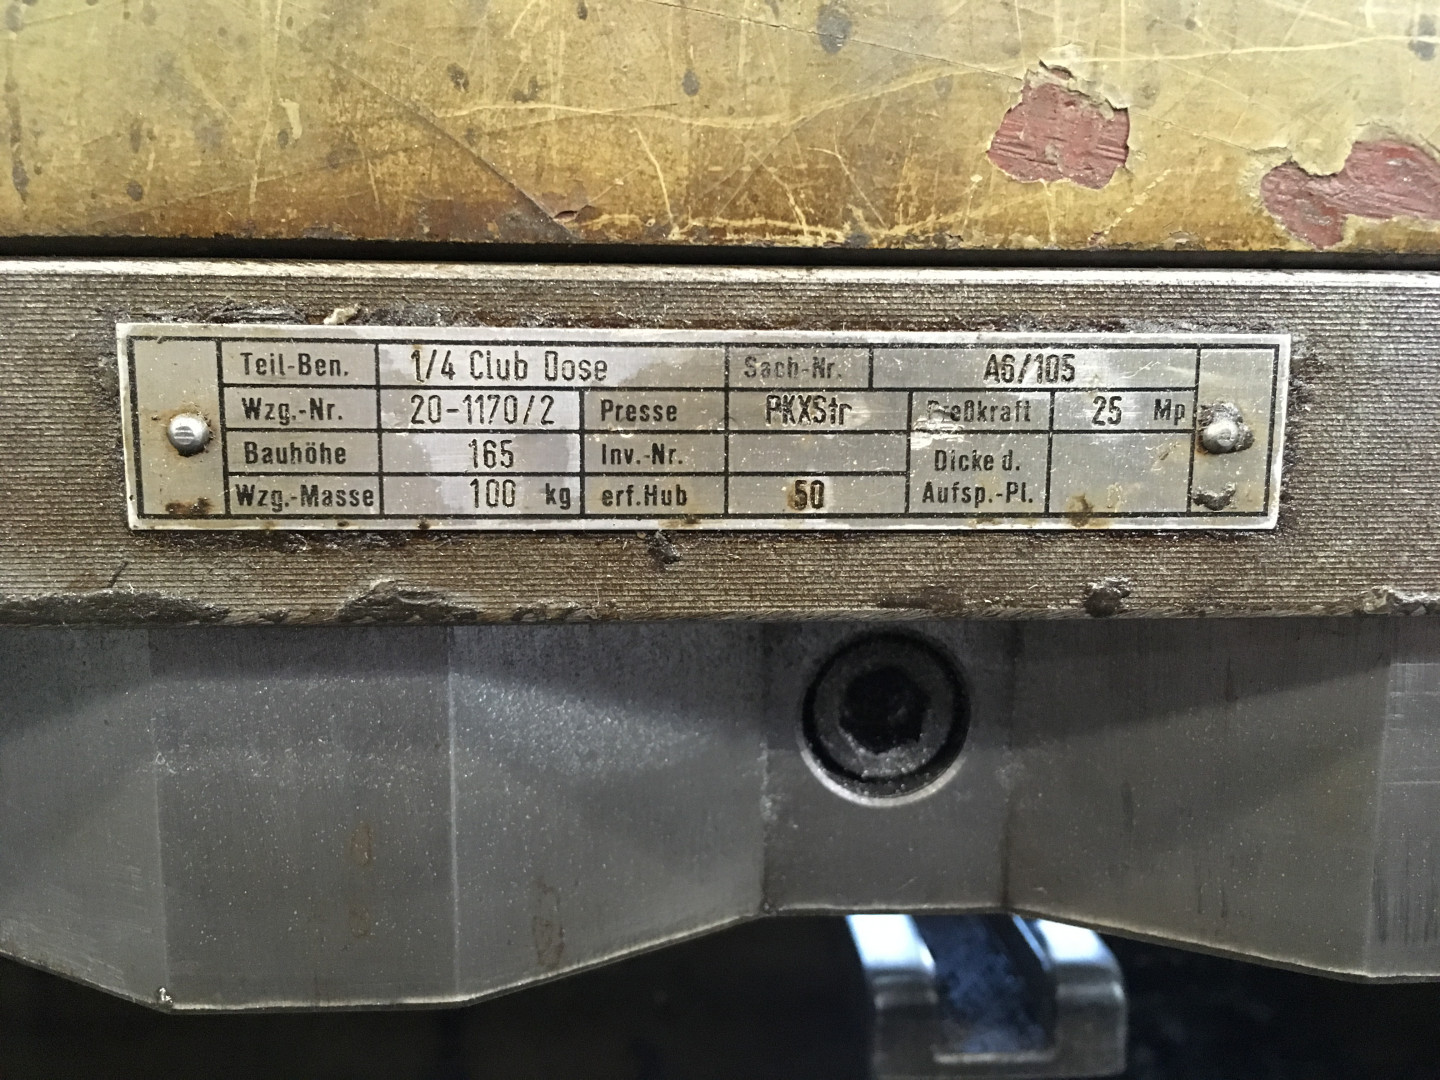 scroll shear tooling for ¼ club (format 827 x 843 mm)